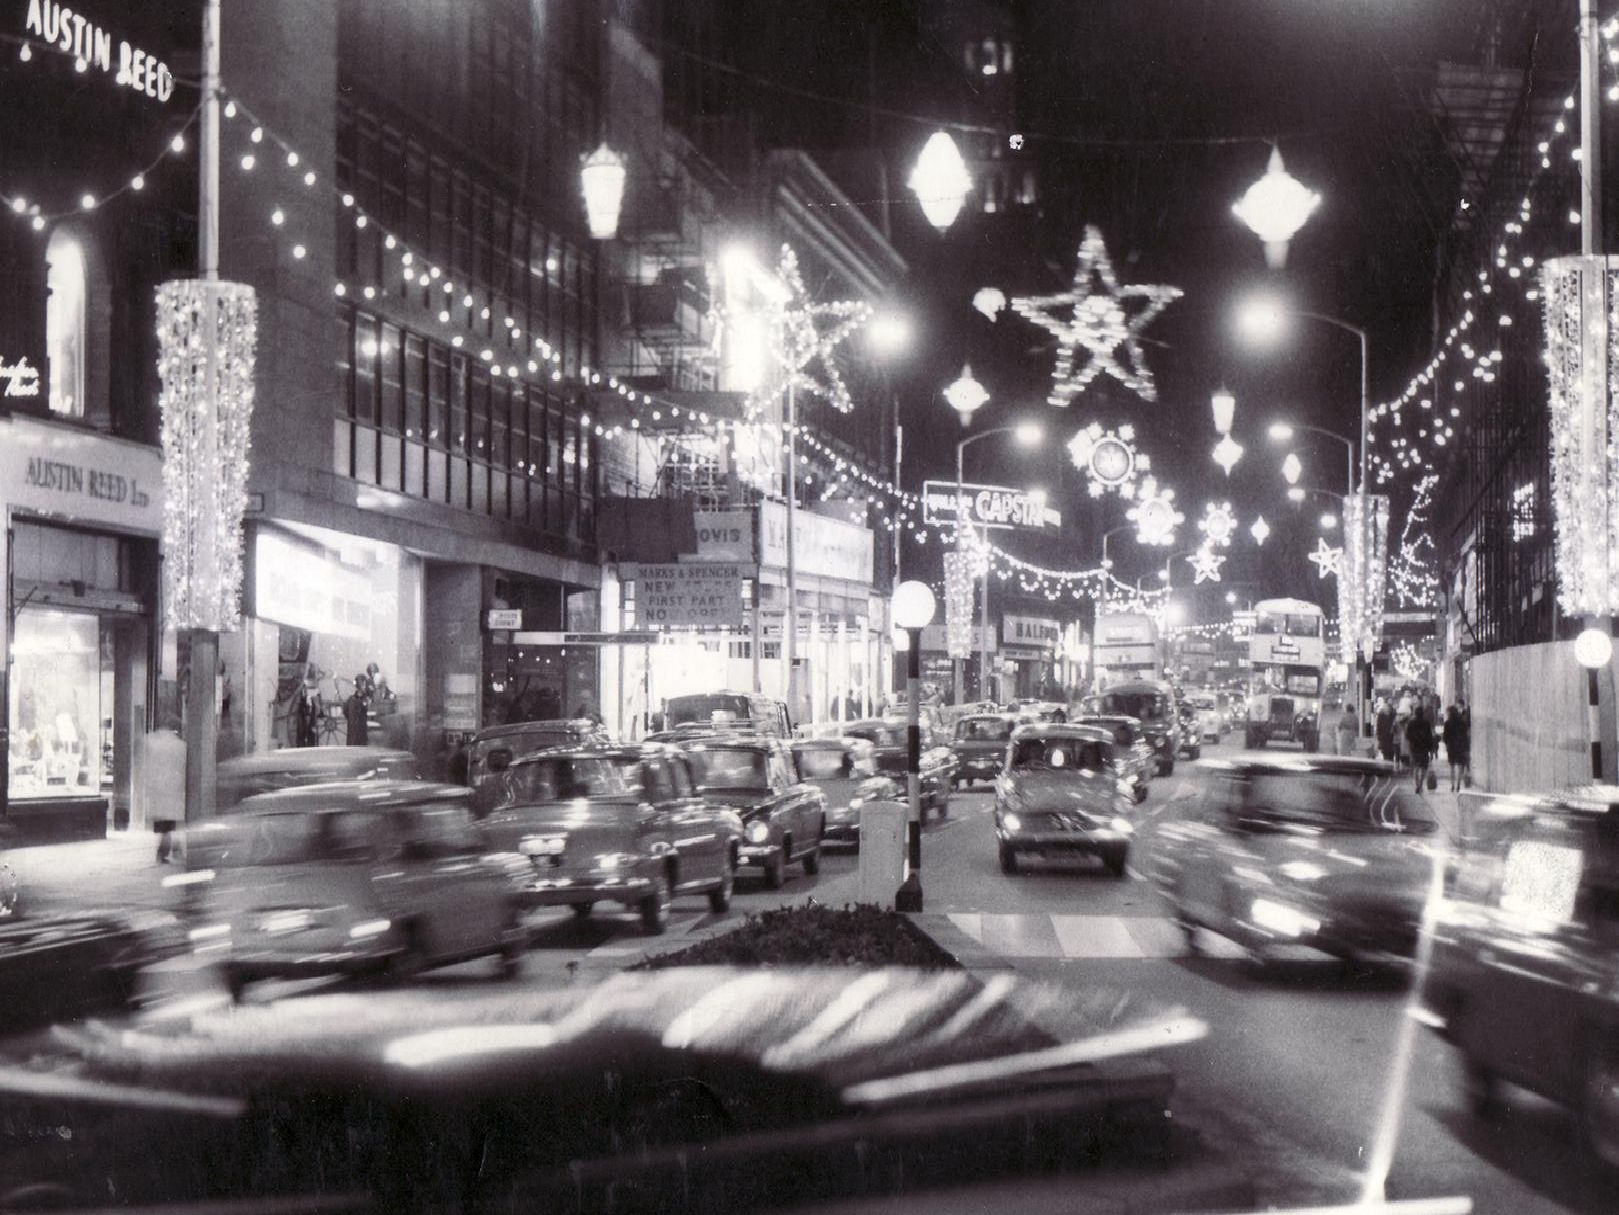 A truly sparkling and busy scene in this 1960s shot of Sheffield at Christmas.